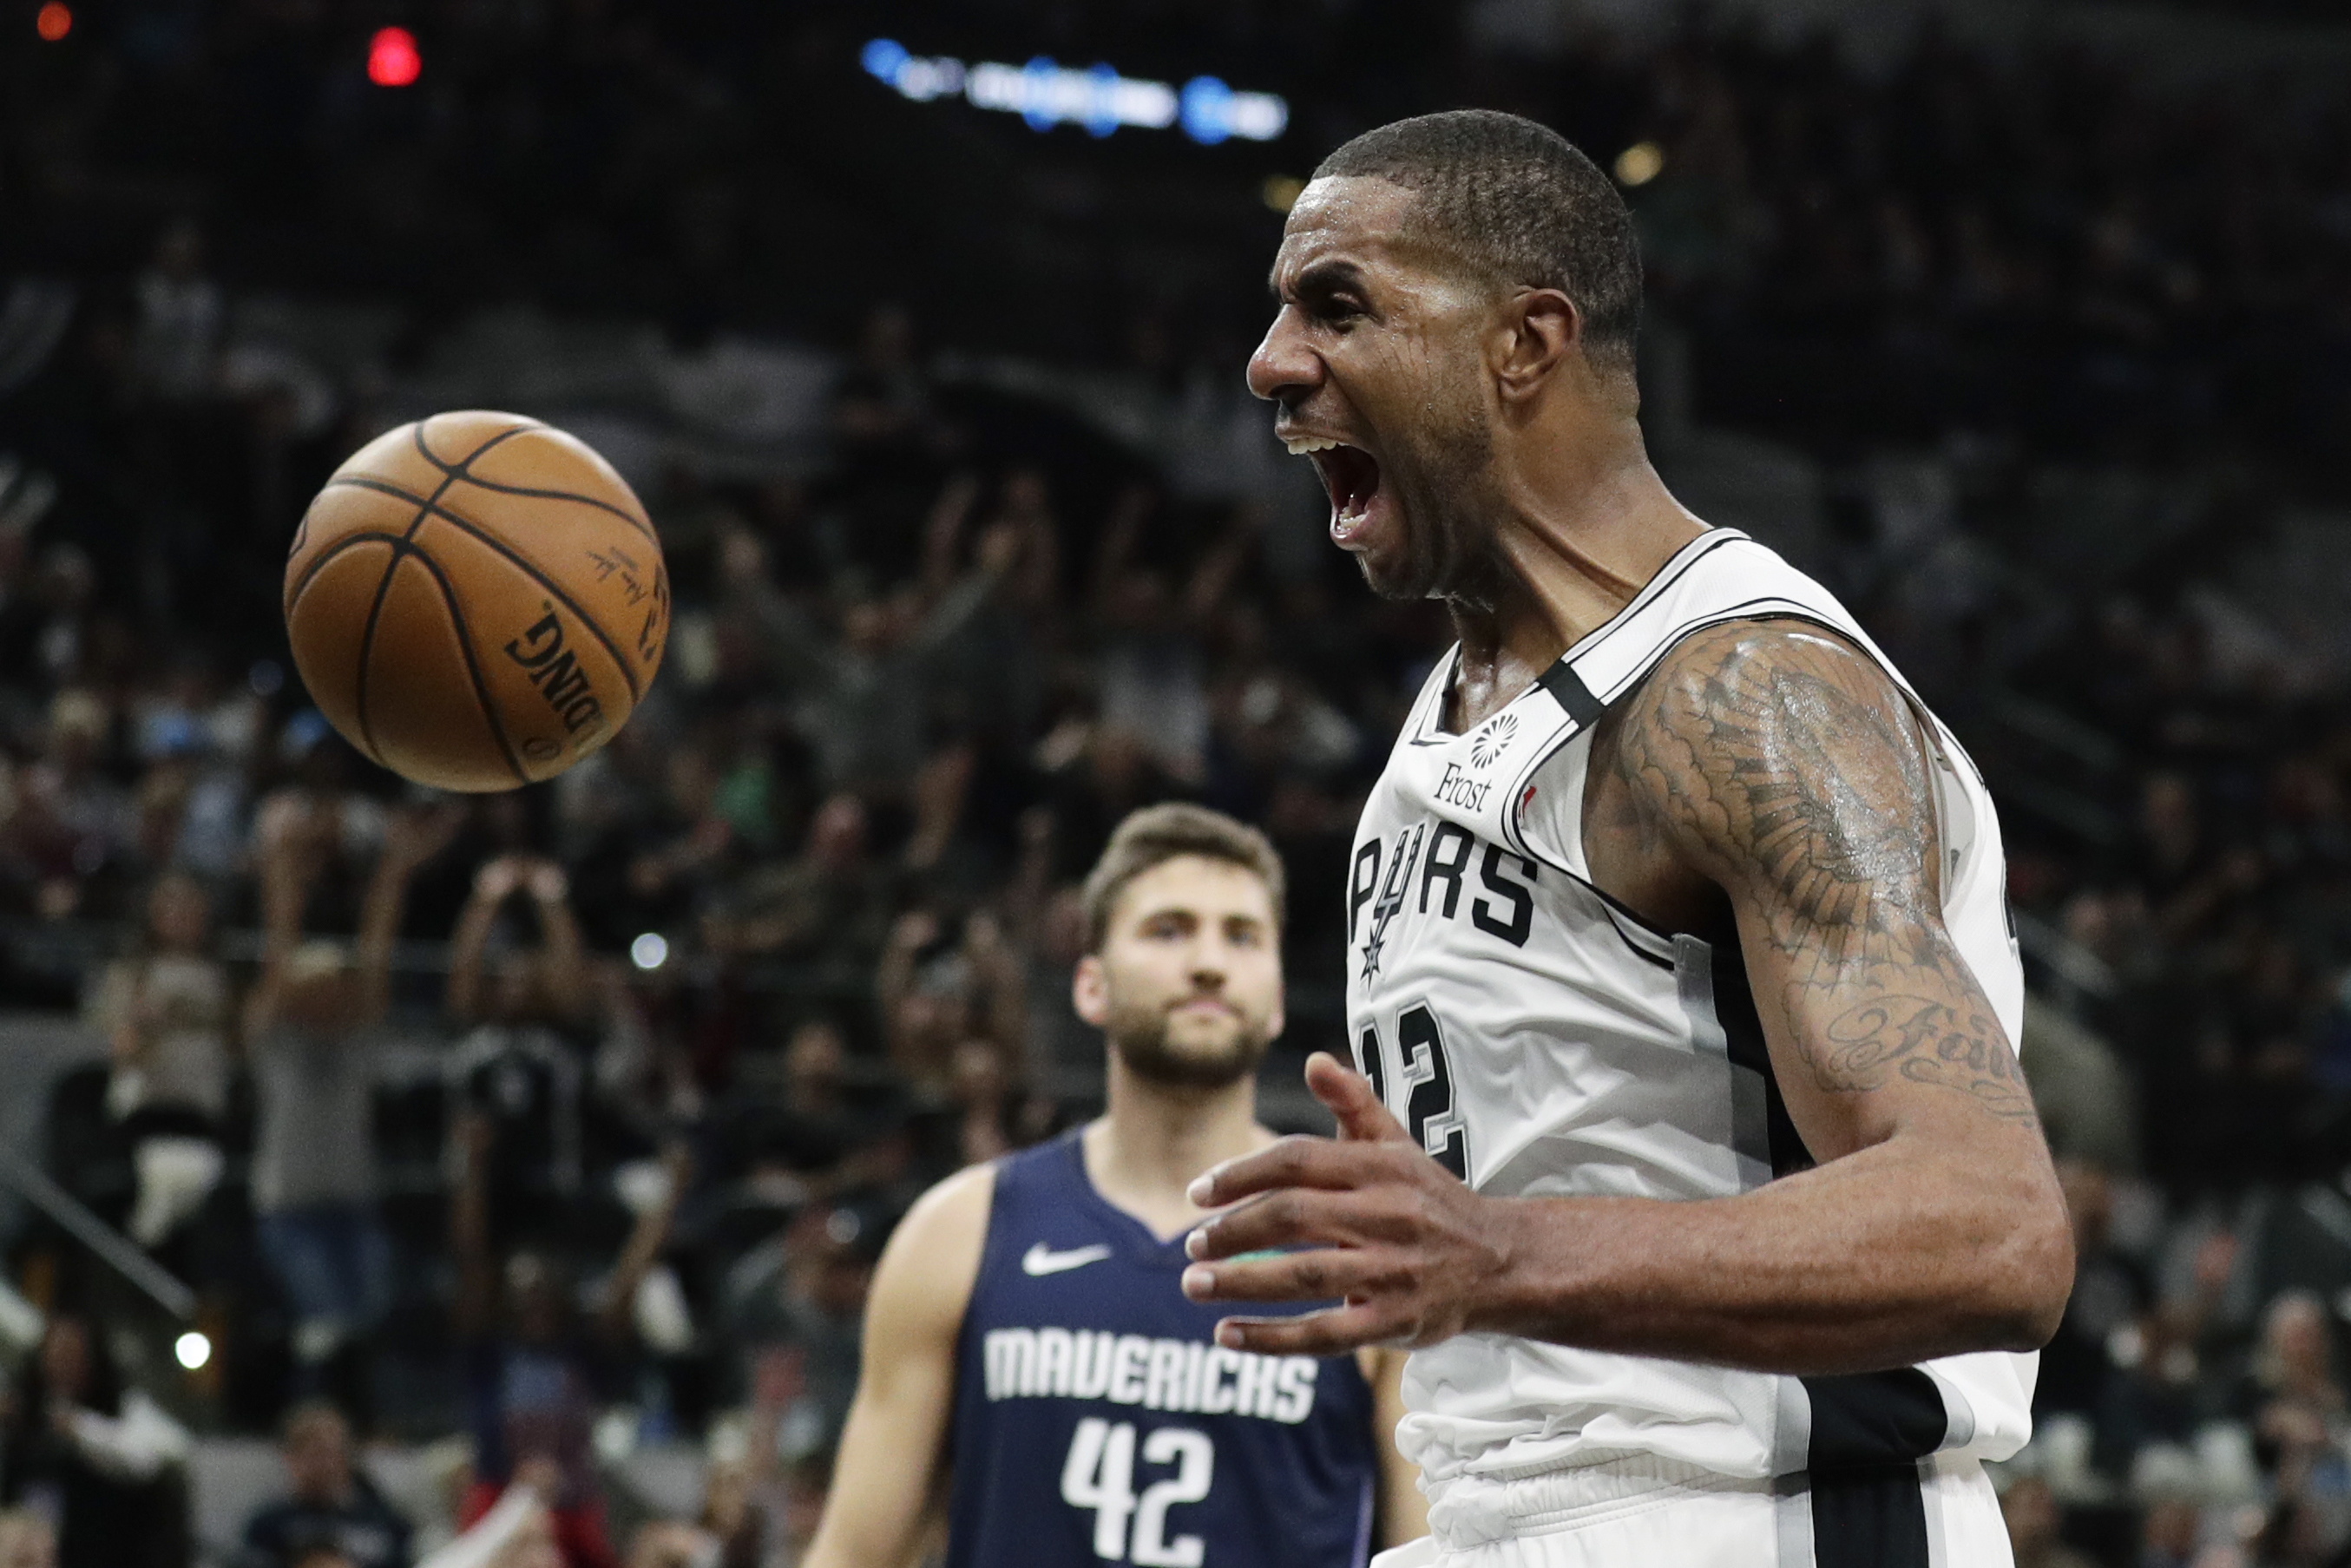 Aldridge's return helps Spurs rally past Mavericks, 119-109